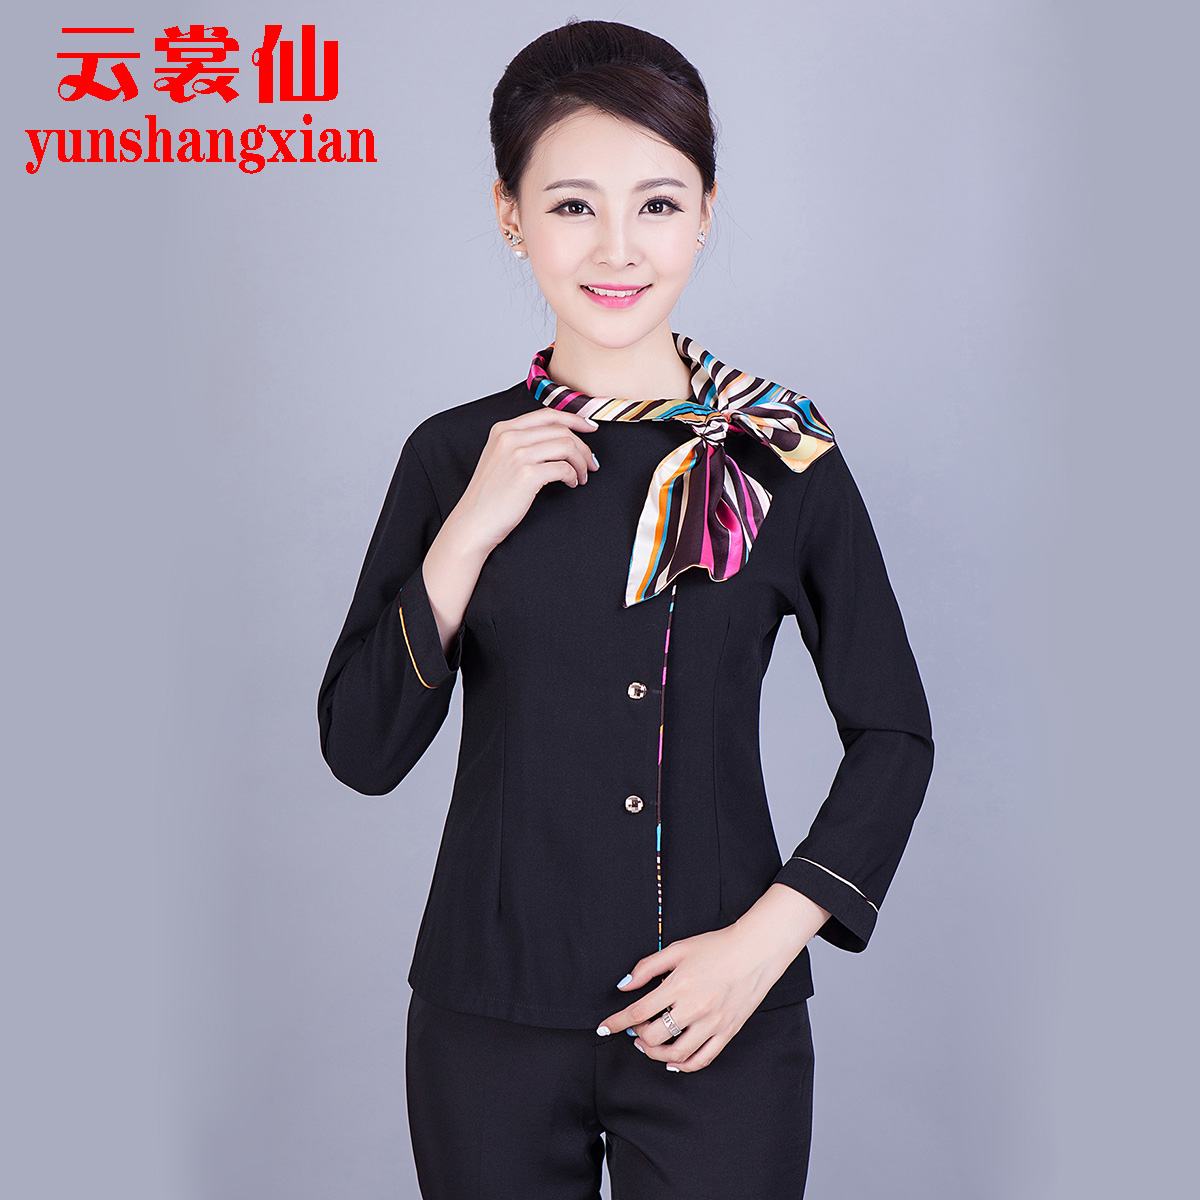 Hotel overalls fall and winter clothes fast food restaurant hotel front desk attendant uniforms female models thick long sleeve